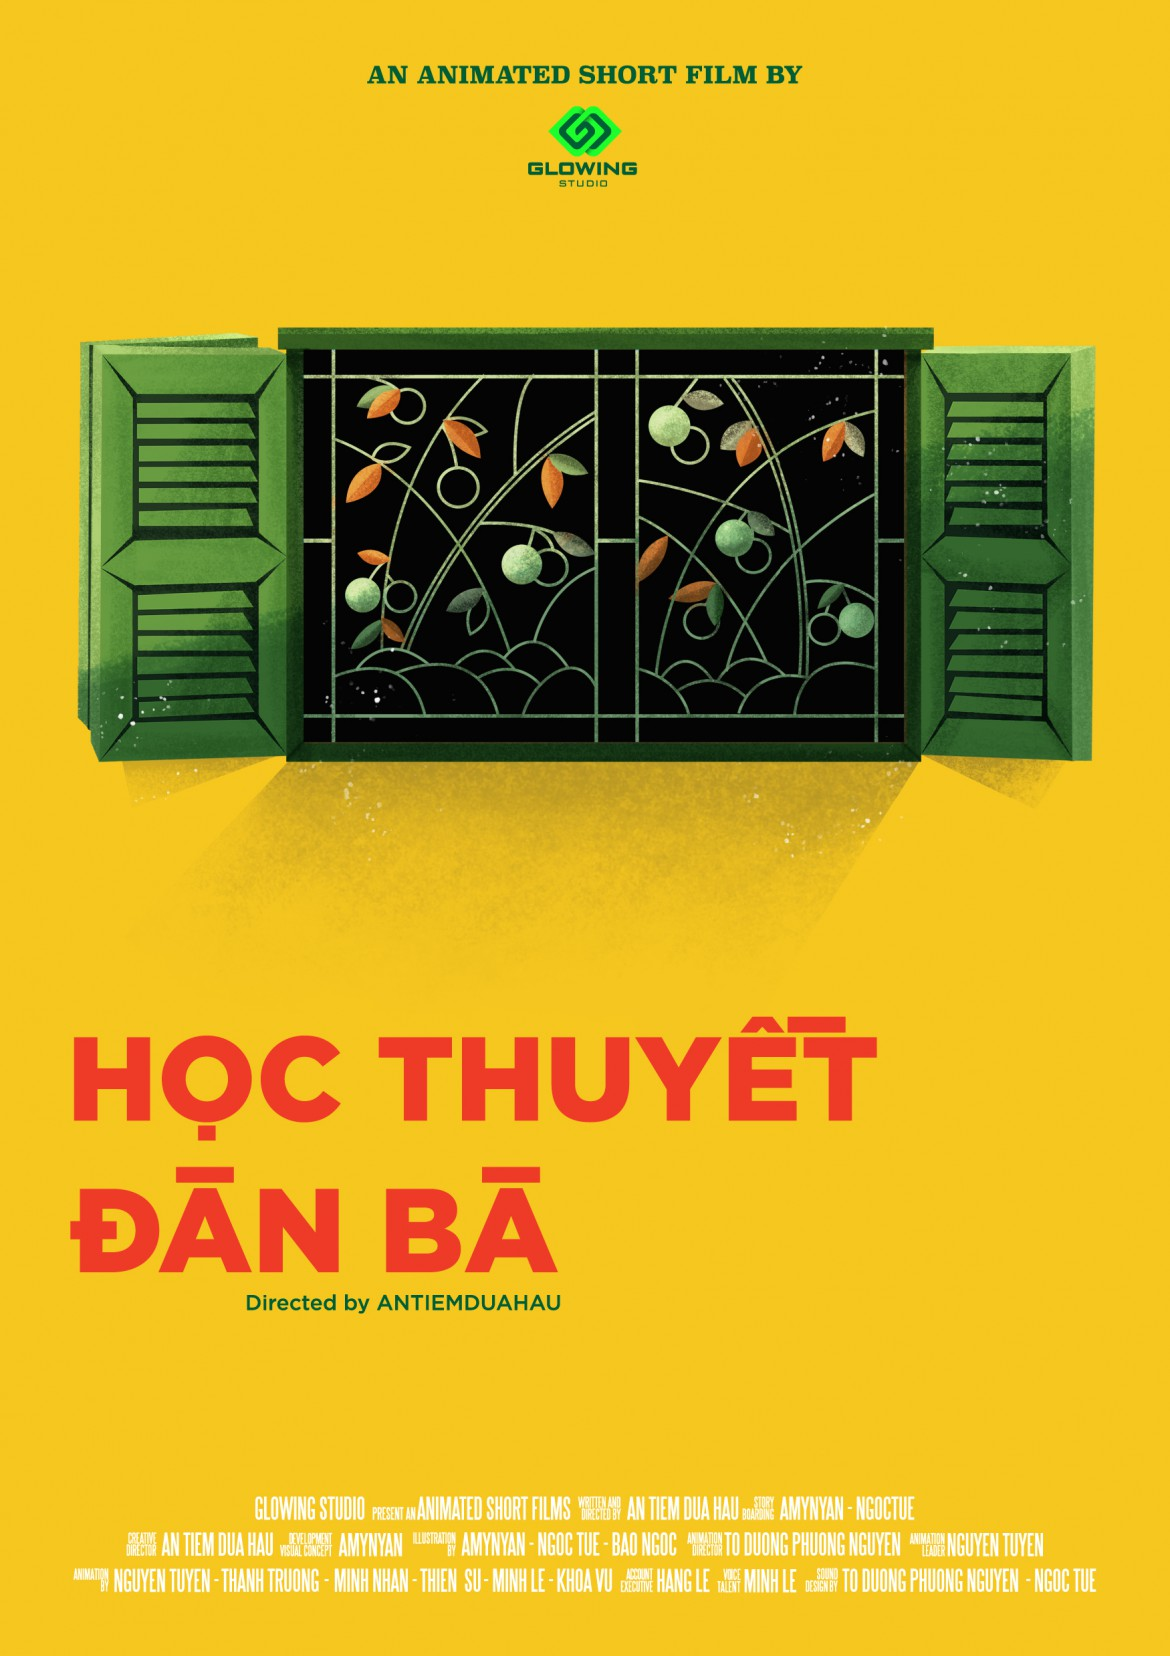 glowing_studio_glowingstudio__video_production_animation_motion_viet_nam_traitimdanba_hocthuyetdanba_hoc thuyet dan ba_poster